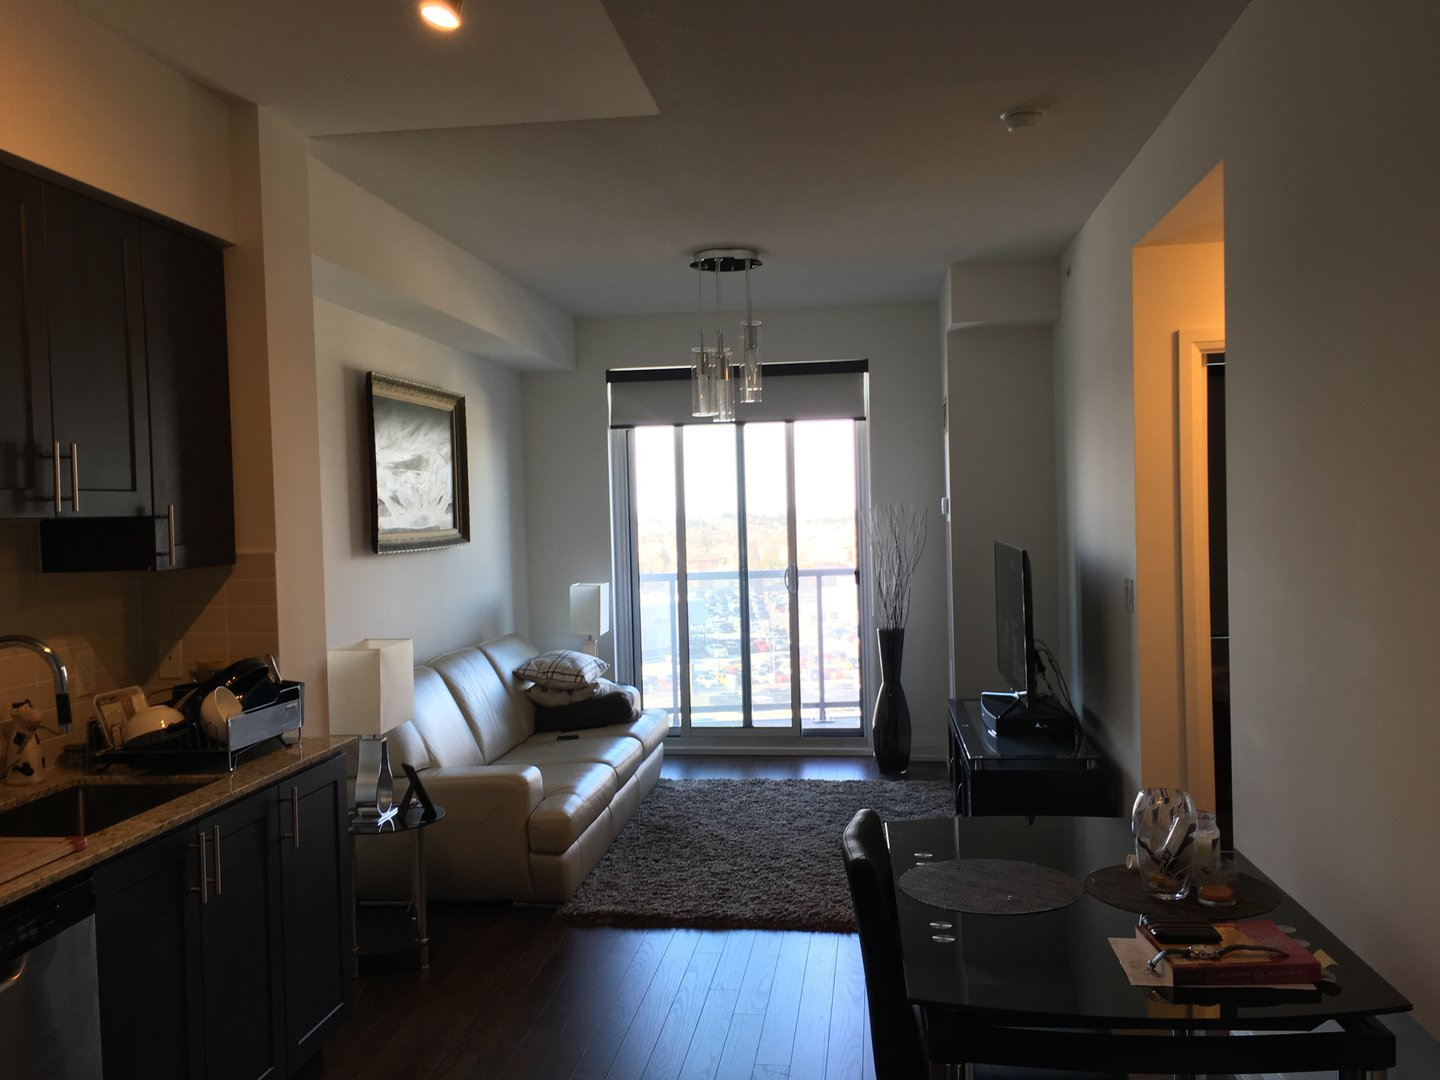 Condo for rent at 7161 Yonge Street, Markham, ON.